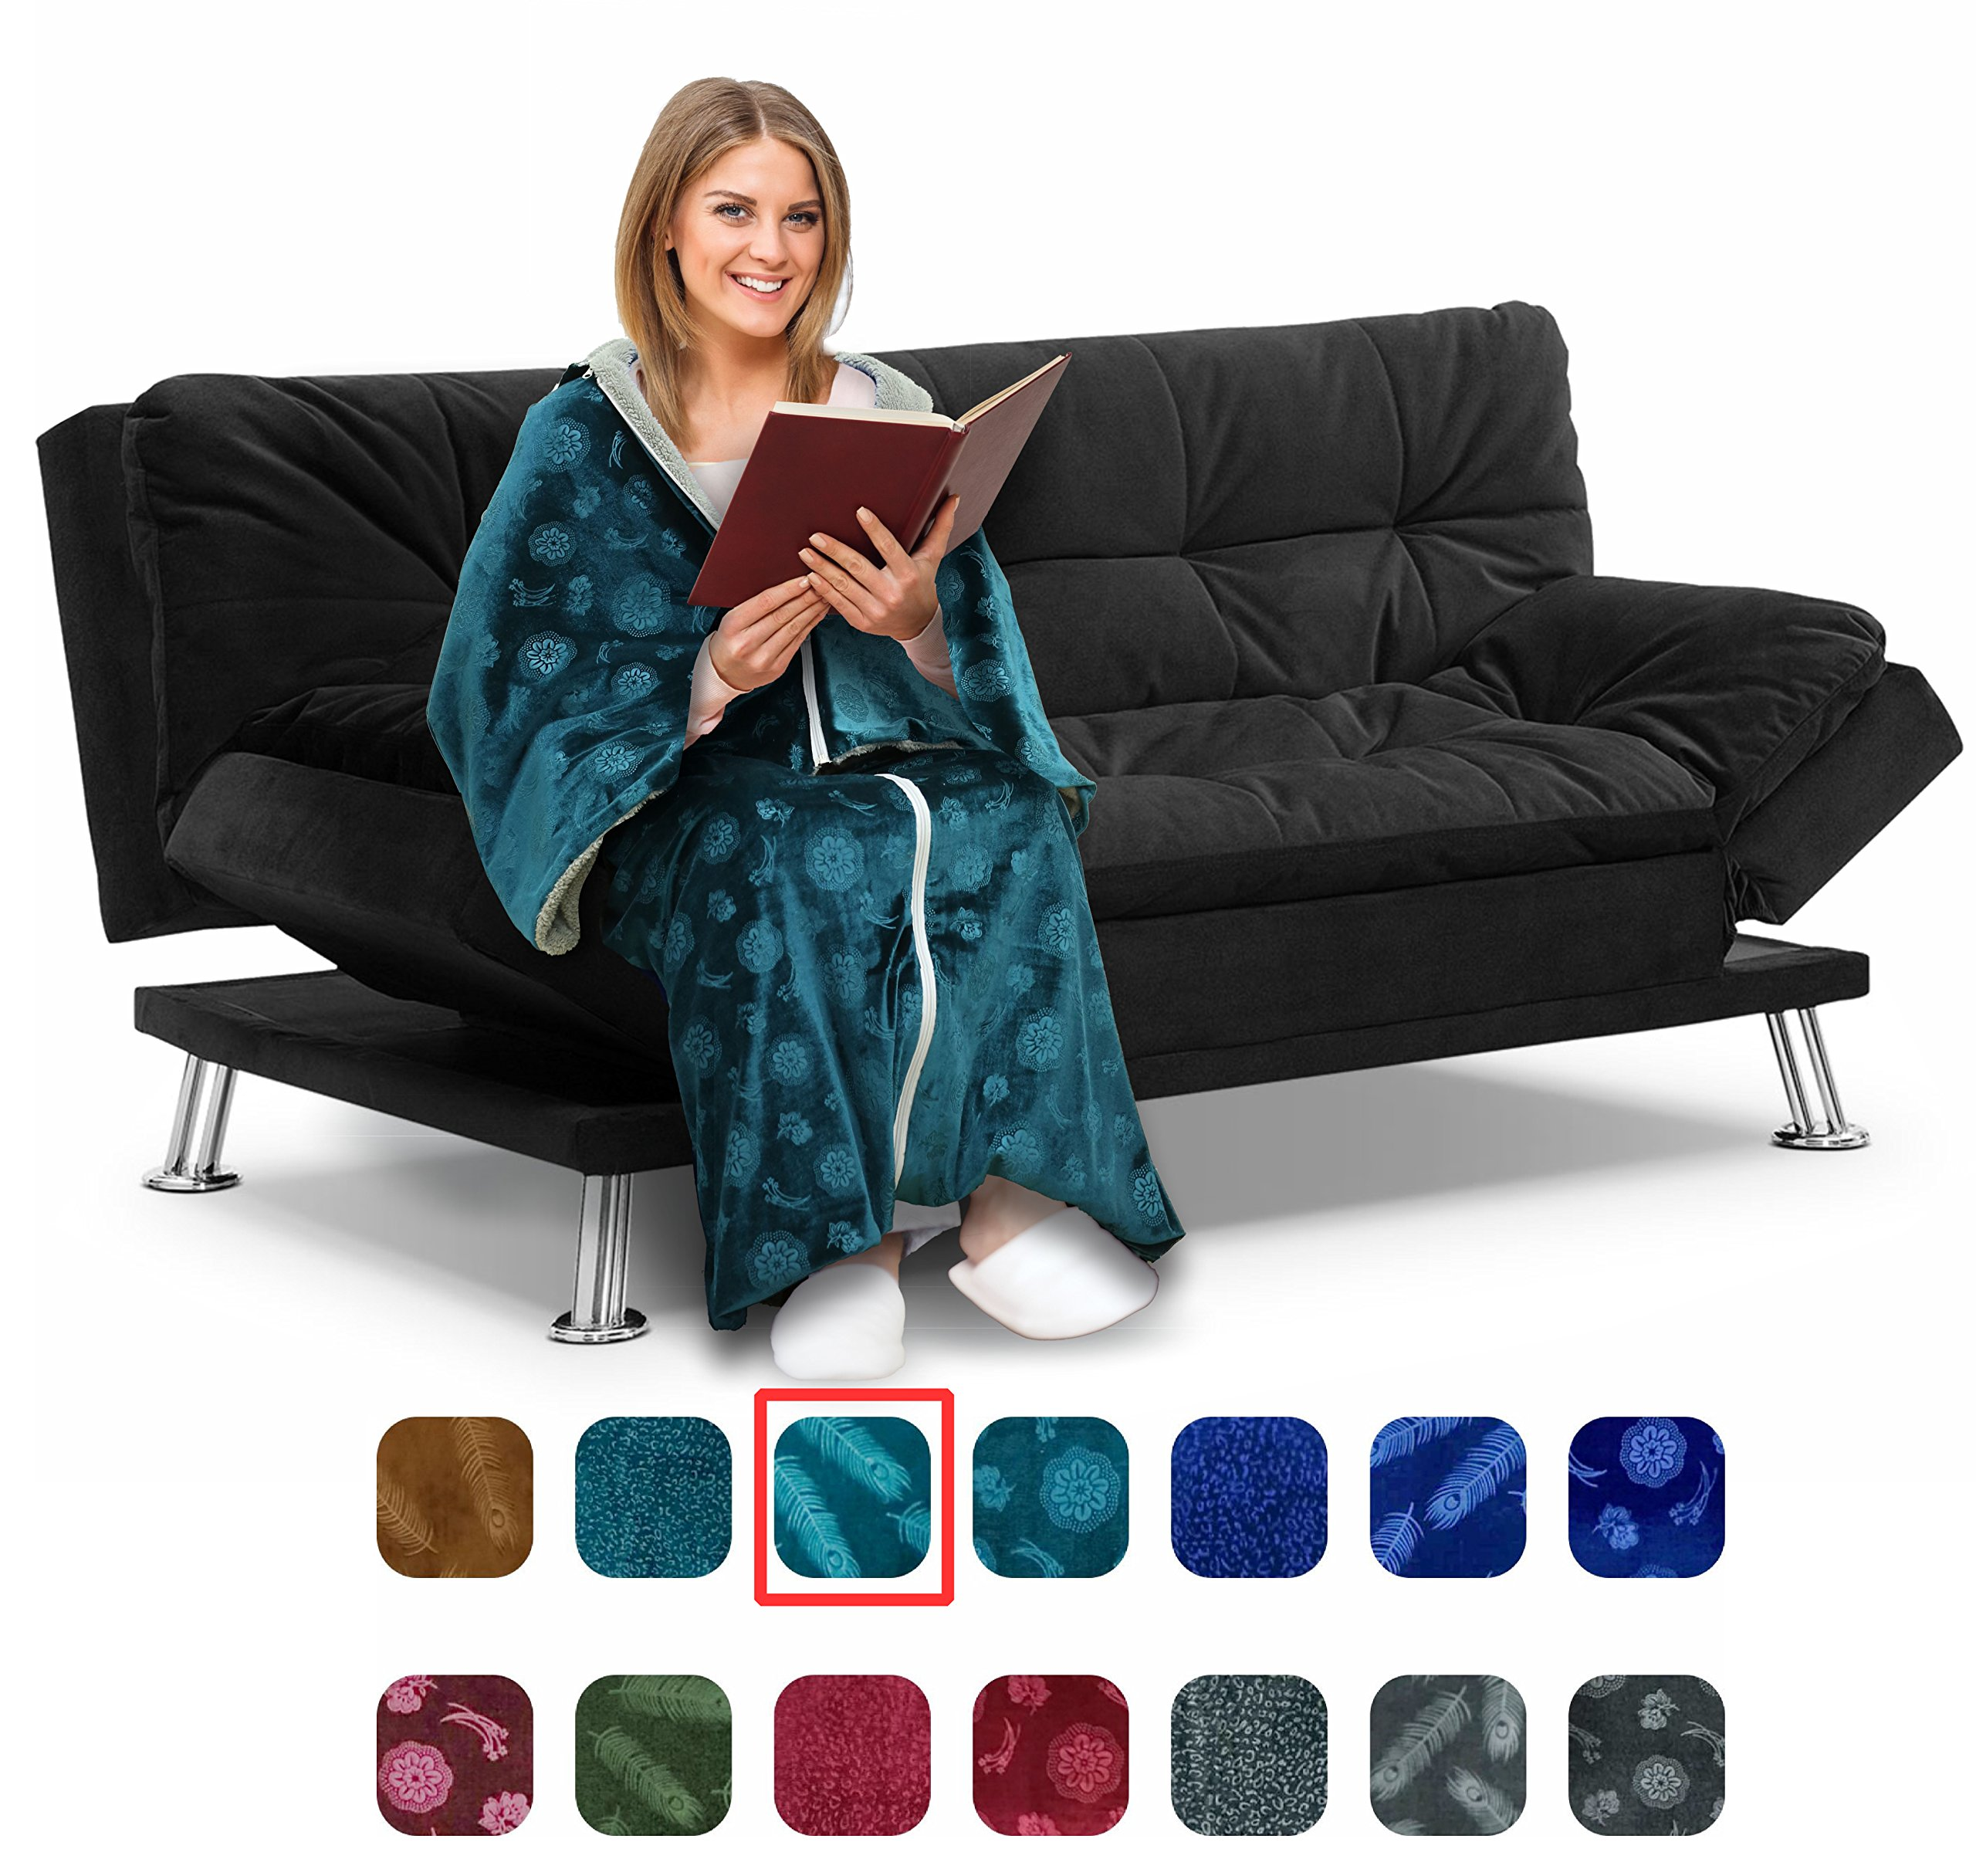 Cōzee Deluxe Wearable Blanket for Adults - Elegant, Cozy, Extra Soft Plush Throw Blanket - Ideal for Elderly & Handicap Clothing, Wheelchairs, or Watching TV (Turquoise-Feathers) by Cōzee Wear